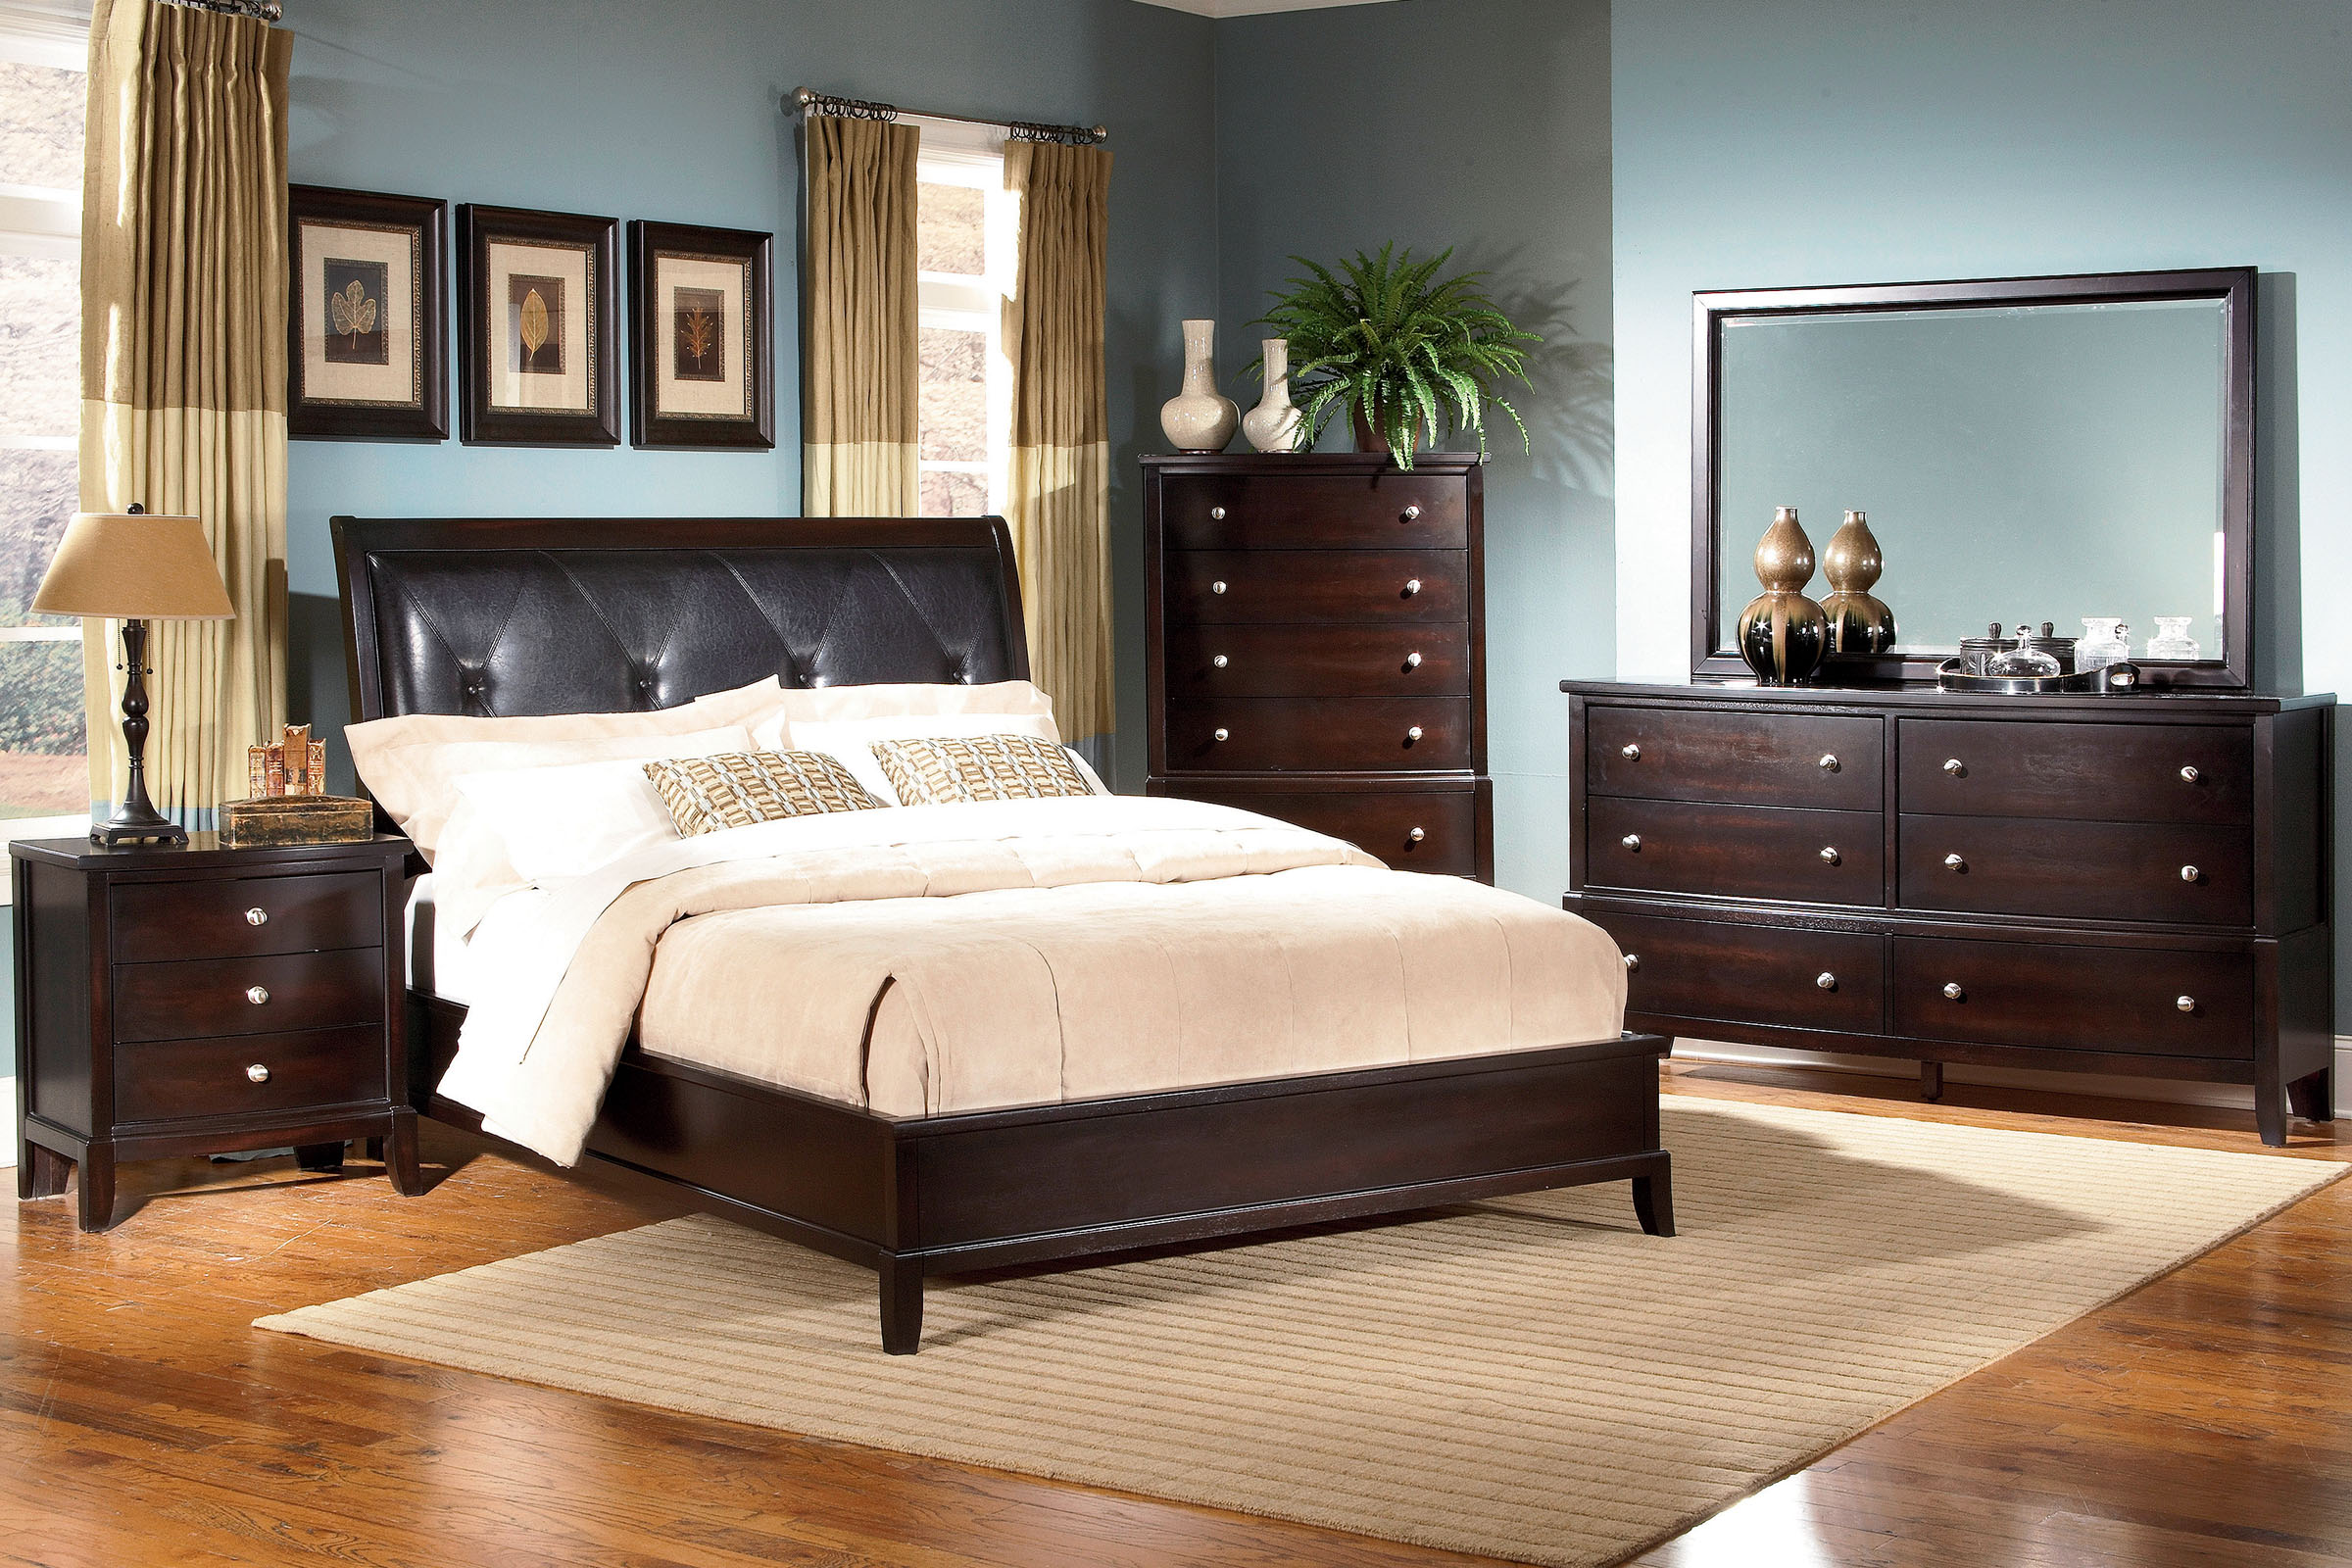 panel walnut sevilla collection new bedroom set bed room gallery newclassics media classic